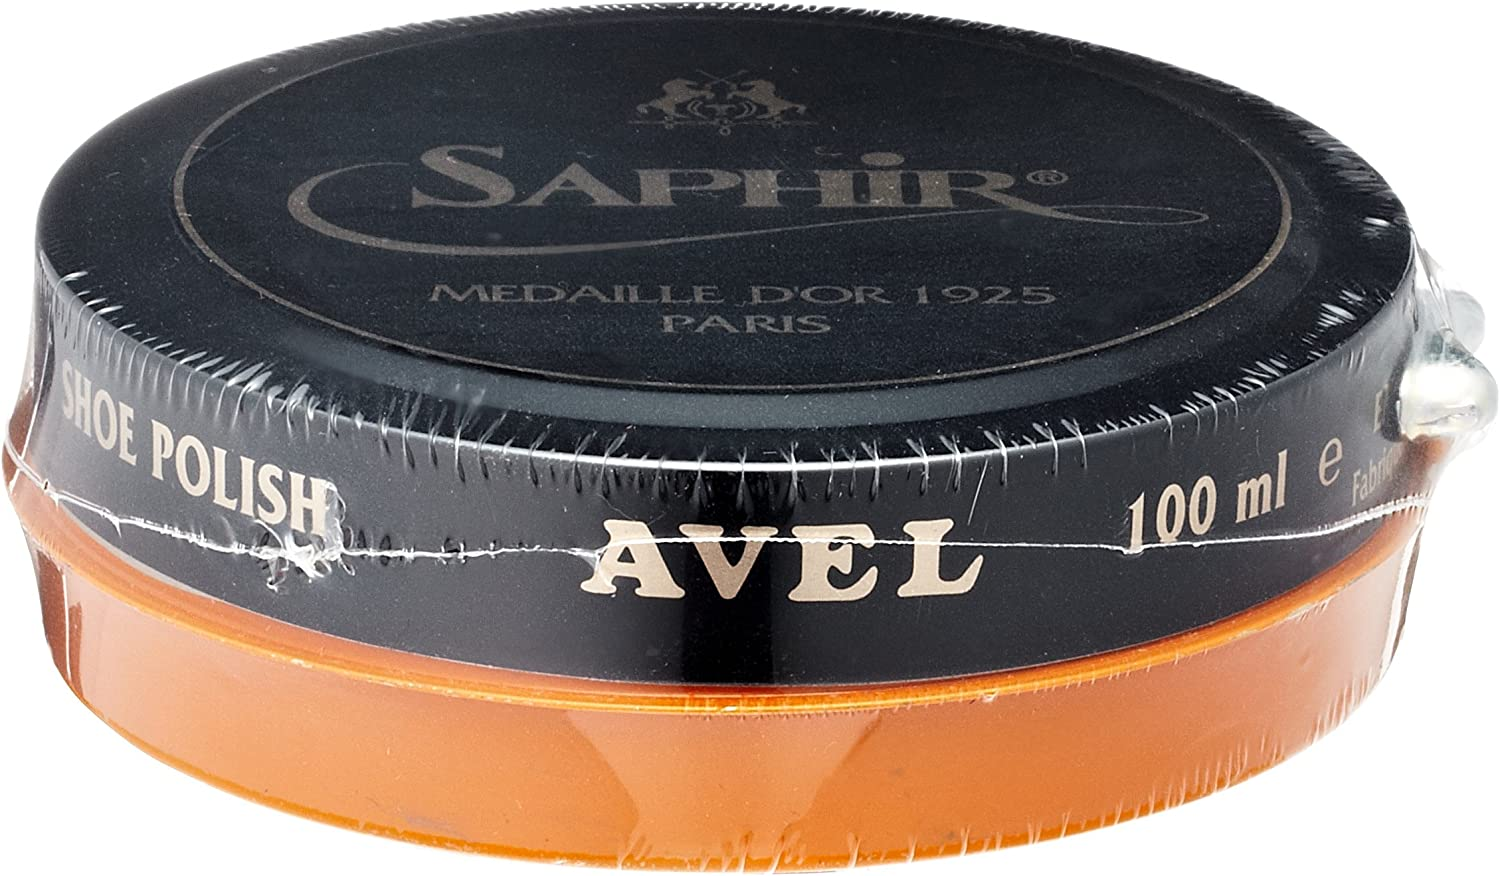 Saphir Medaille d'Or Pate De Luxe - Natural Wax Shoe Polish for Leather Shining